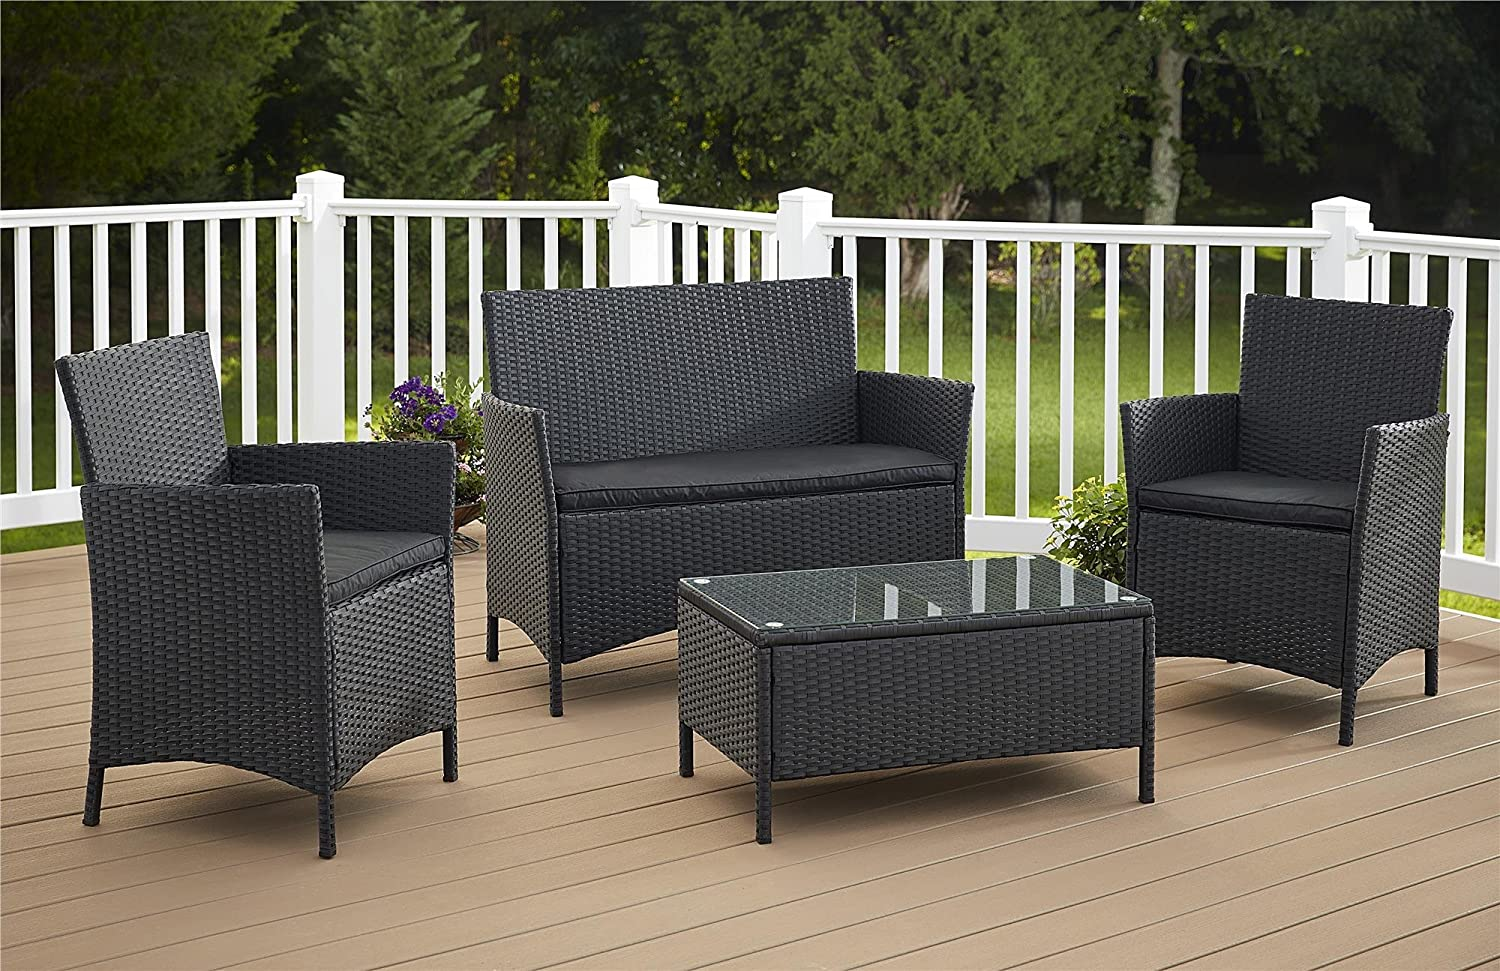 sofa vimeo sectional furniture ideas on patio set wicker rattan outdoor and style inspiration modern